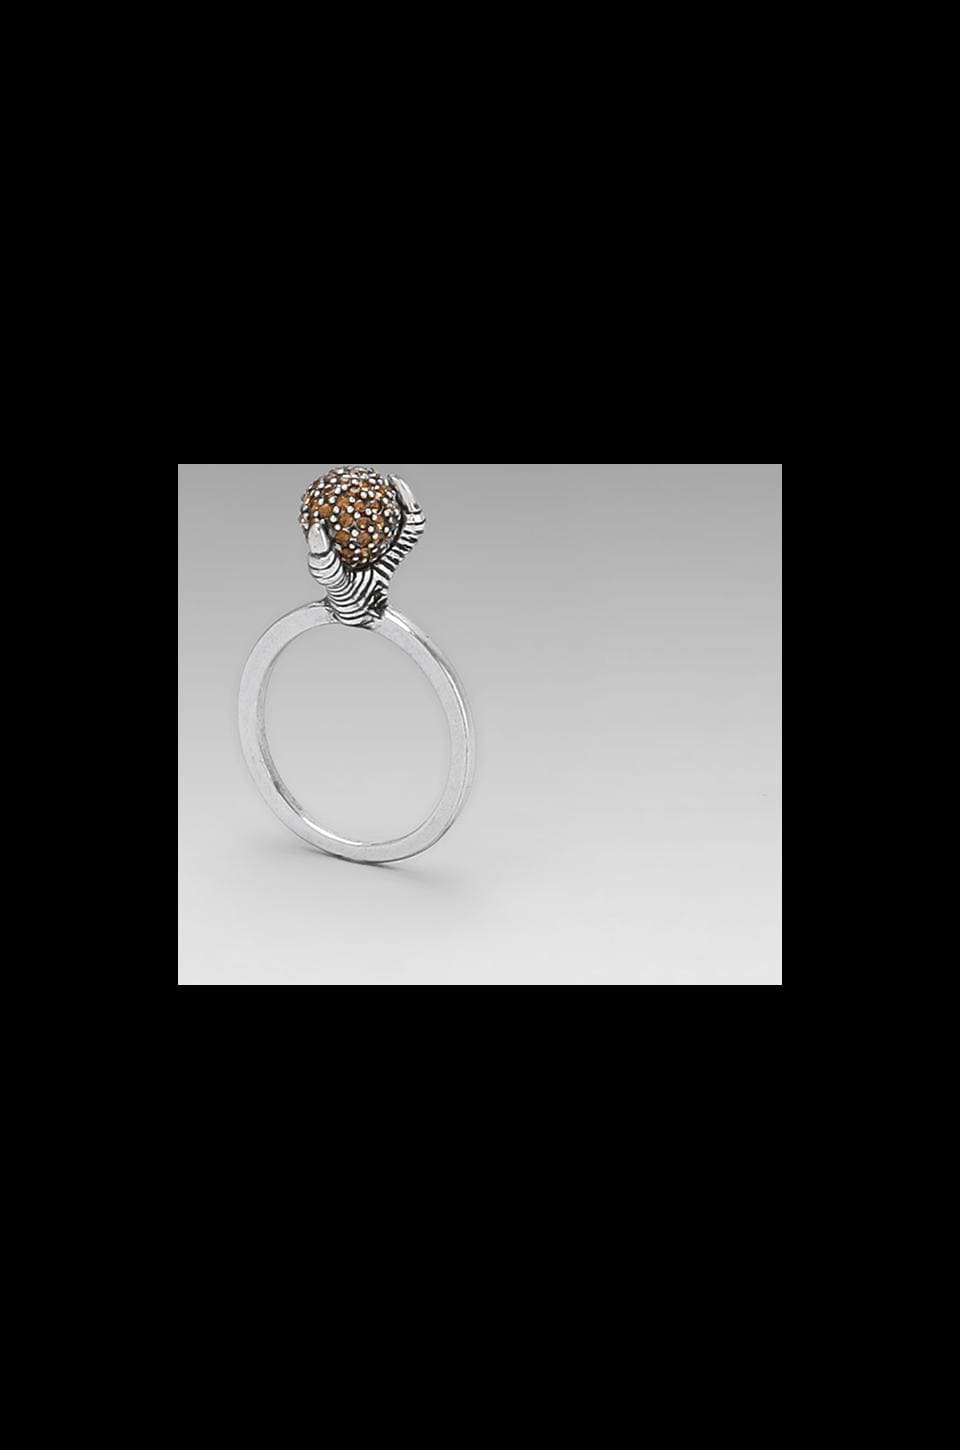 House of Harlow 1960 House of Harlow Talon Crystal Ring in Palladium with Dorado Crystal Pave